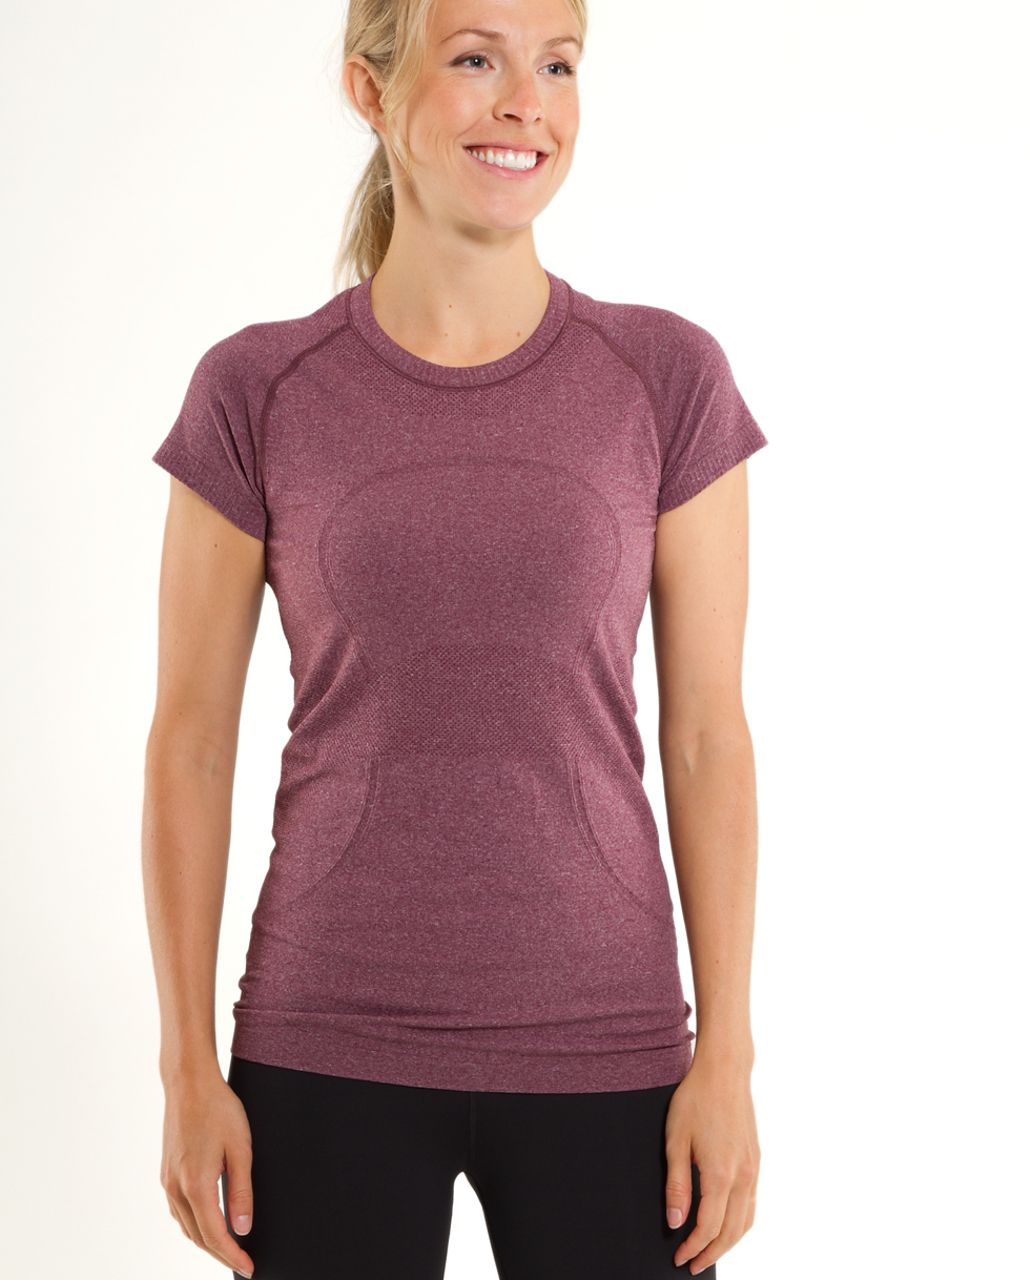 Lululemon Run:  Swiftly Tech Short Sleeve - Plum